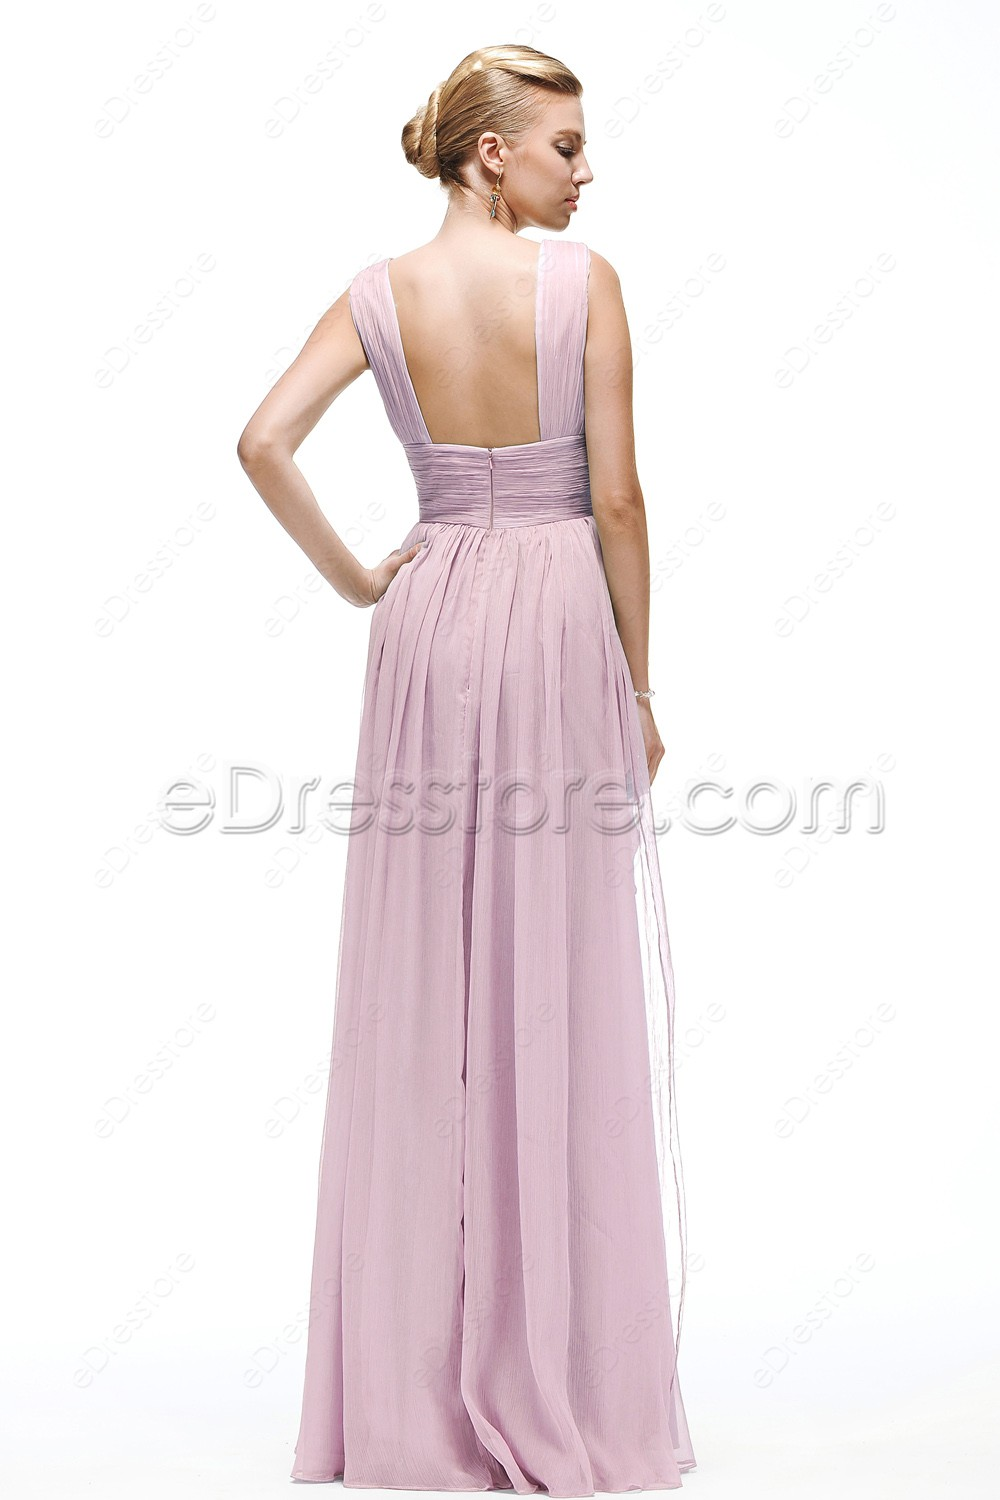 V neck pink bridesmaid dress maid of honor dresses for Maid of honor wedding dresses